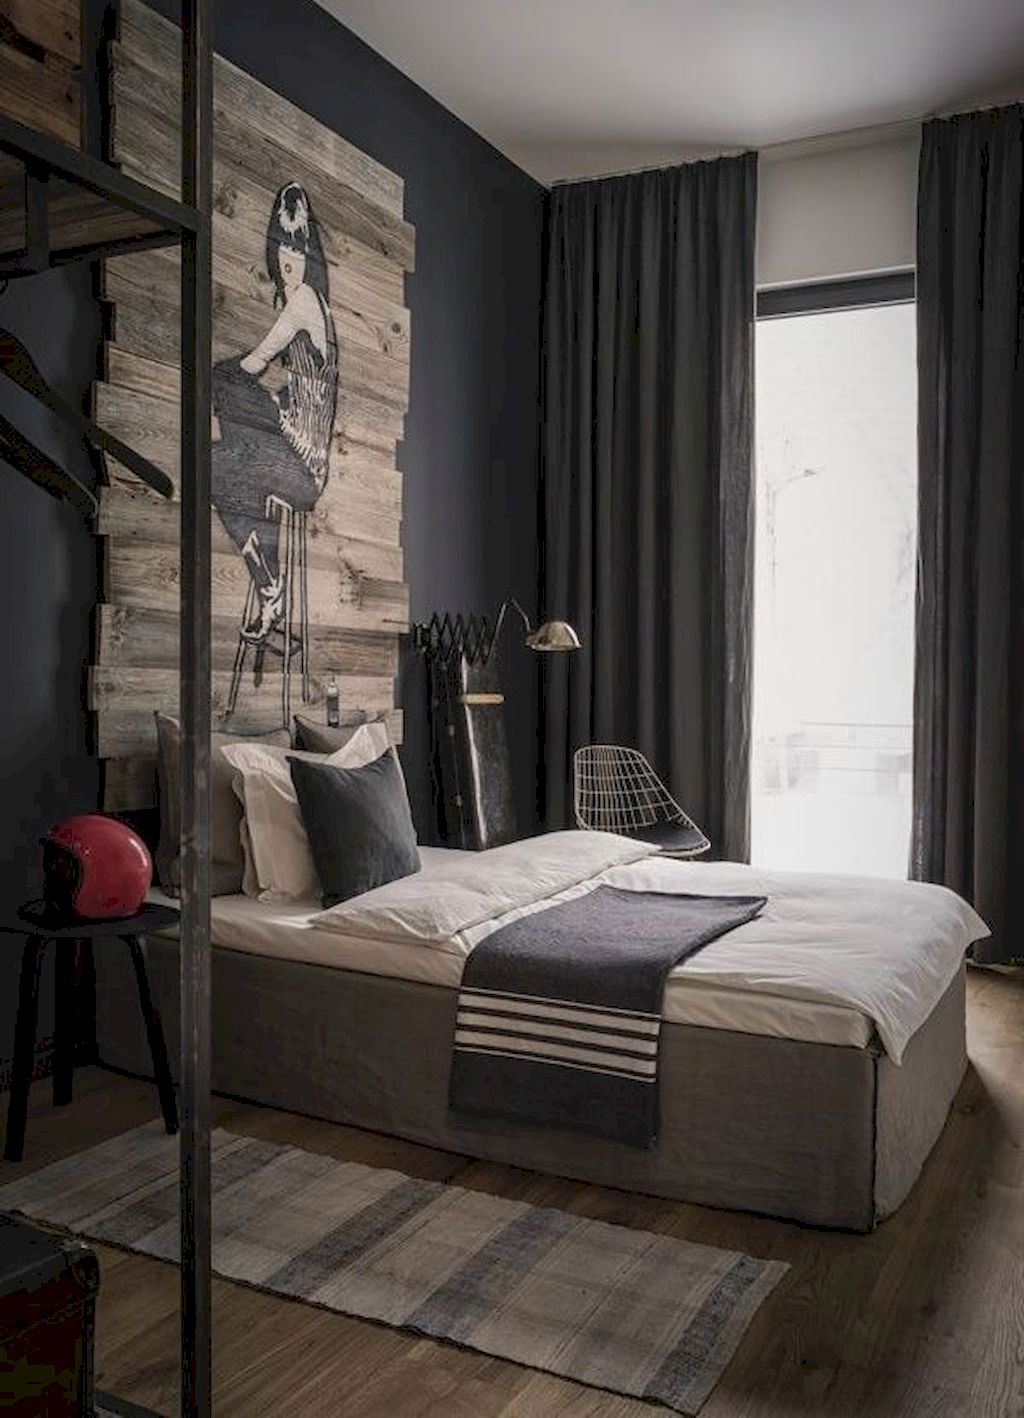 75 Awesome Master Bedroom Design Ideas 75